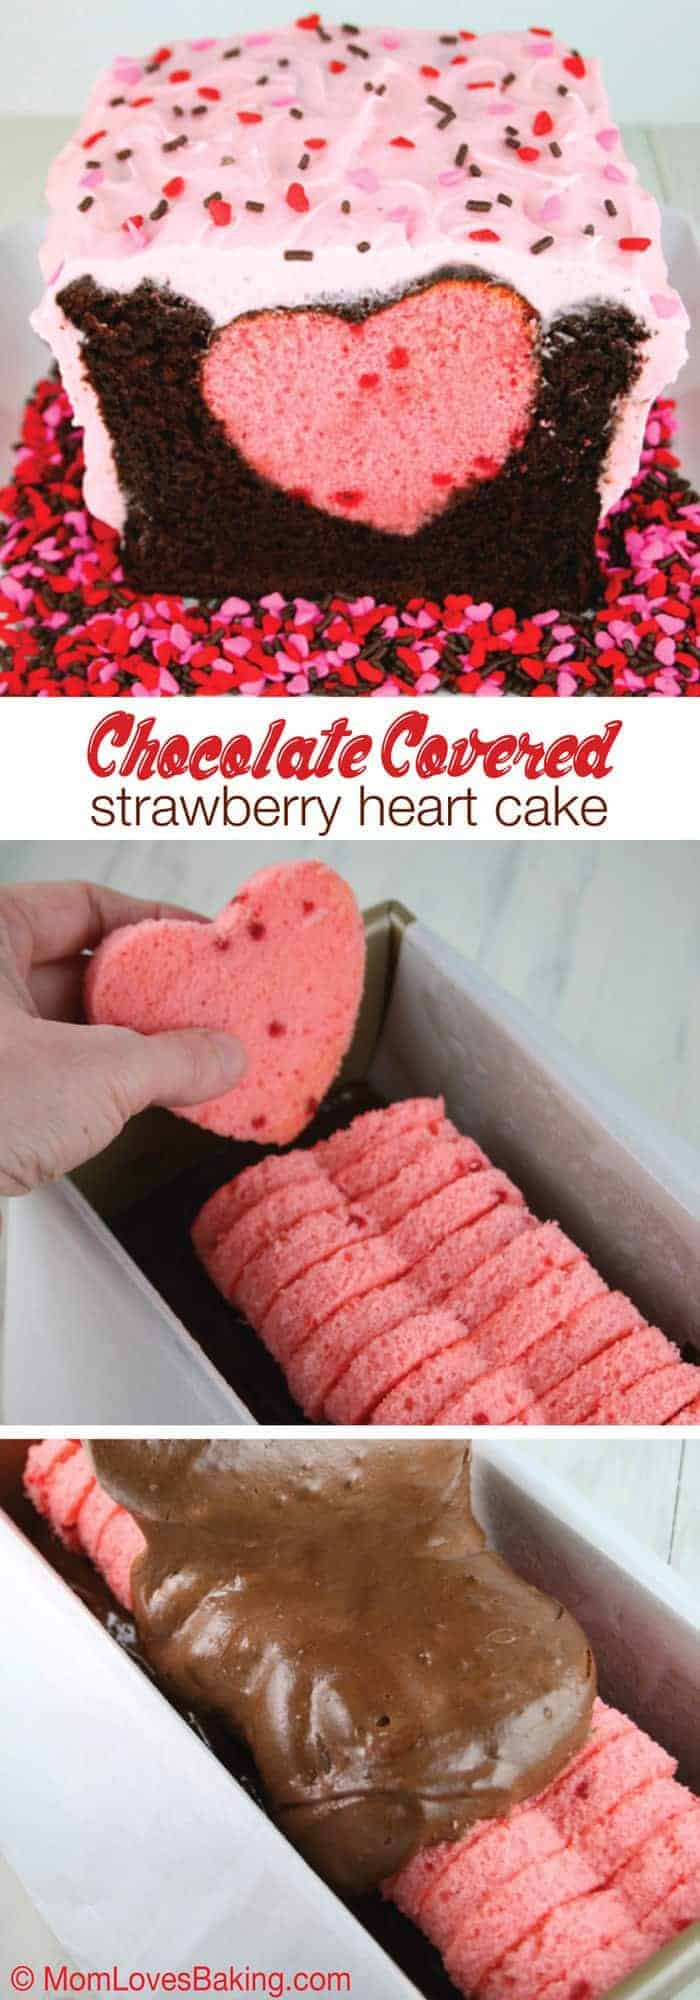 Chocolate Covered Strawberry Heart Cake